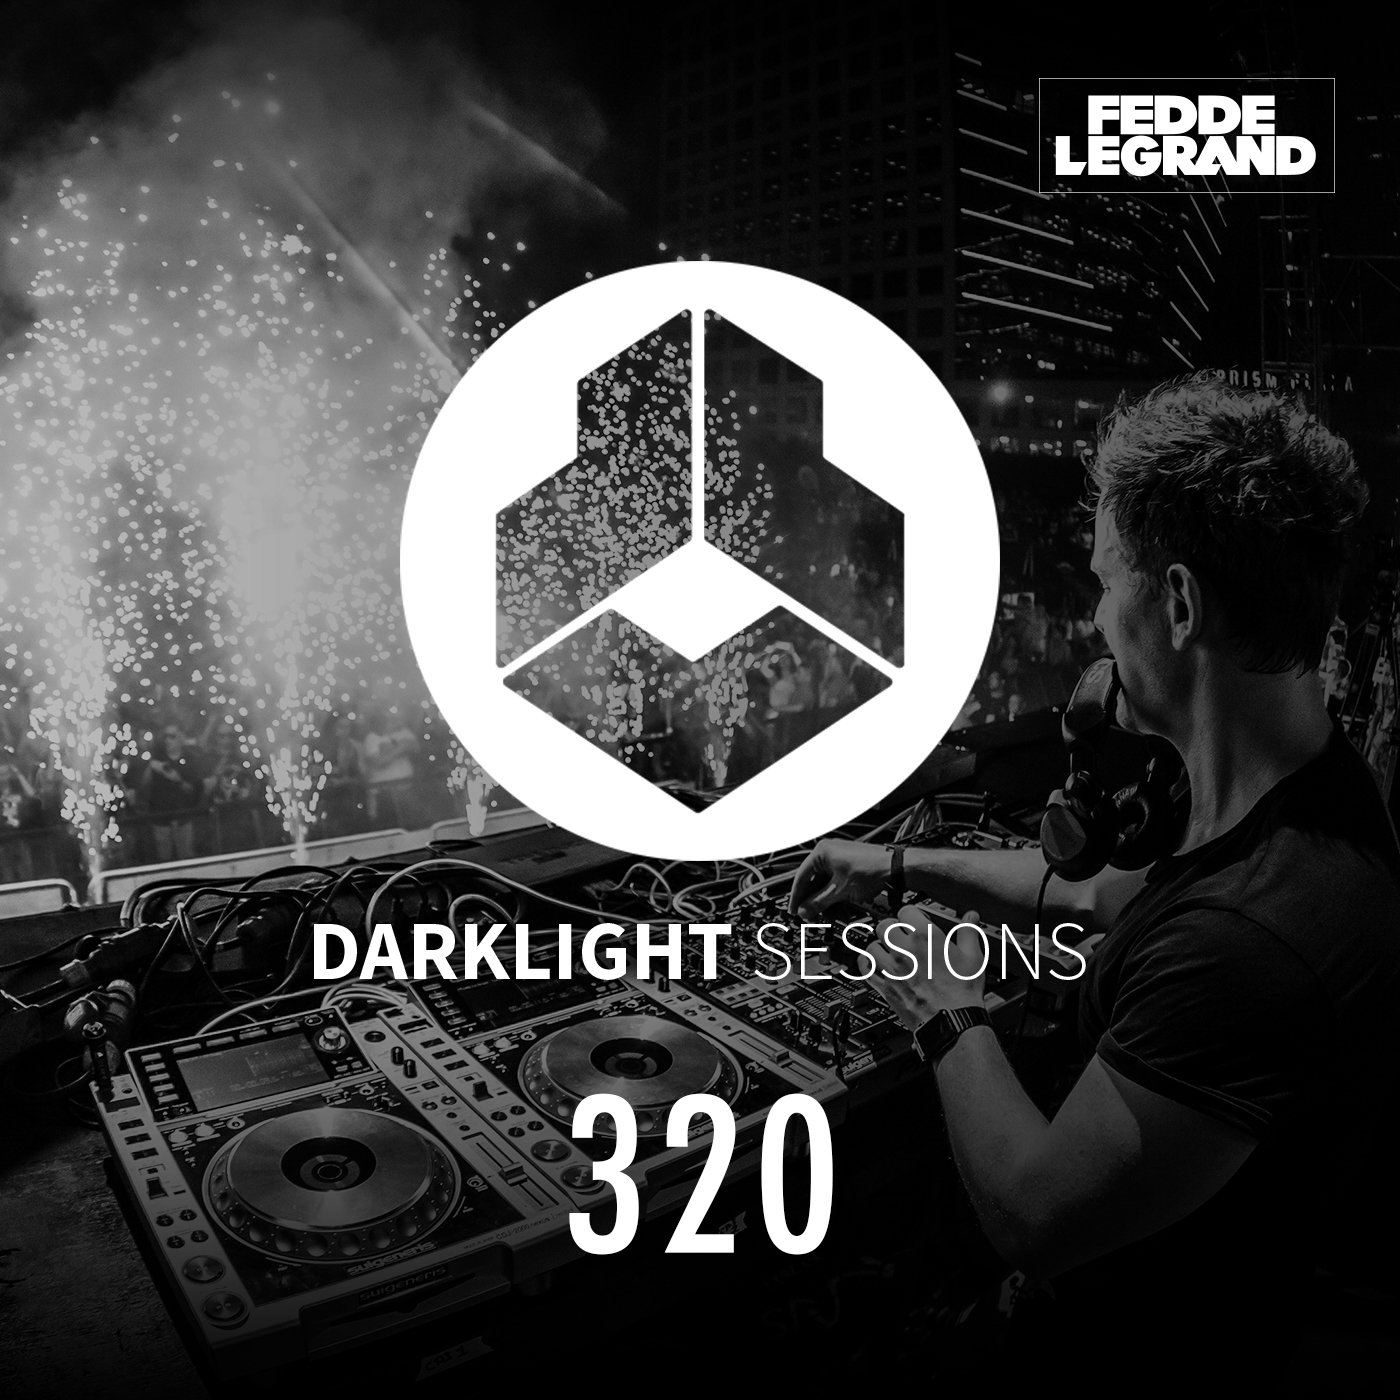 Darklight Sessions 320